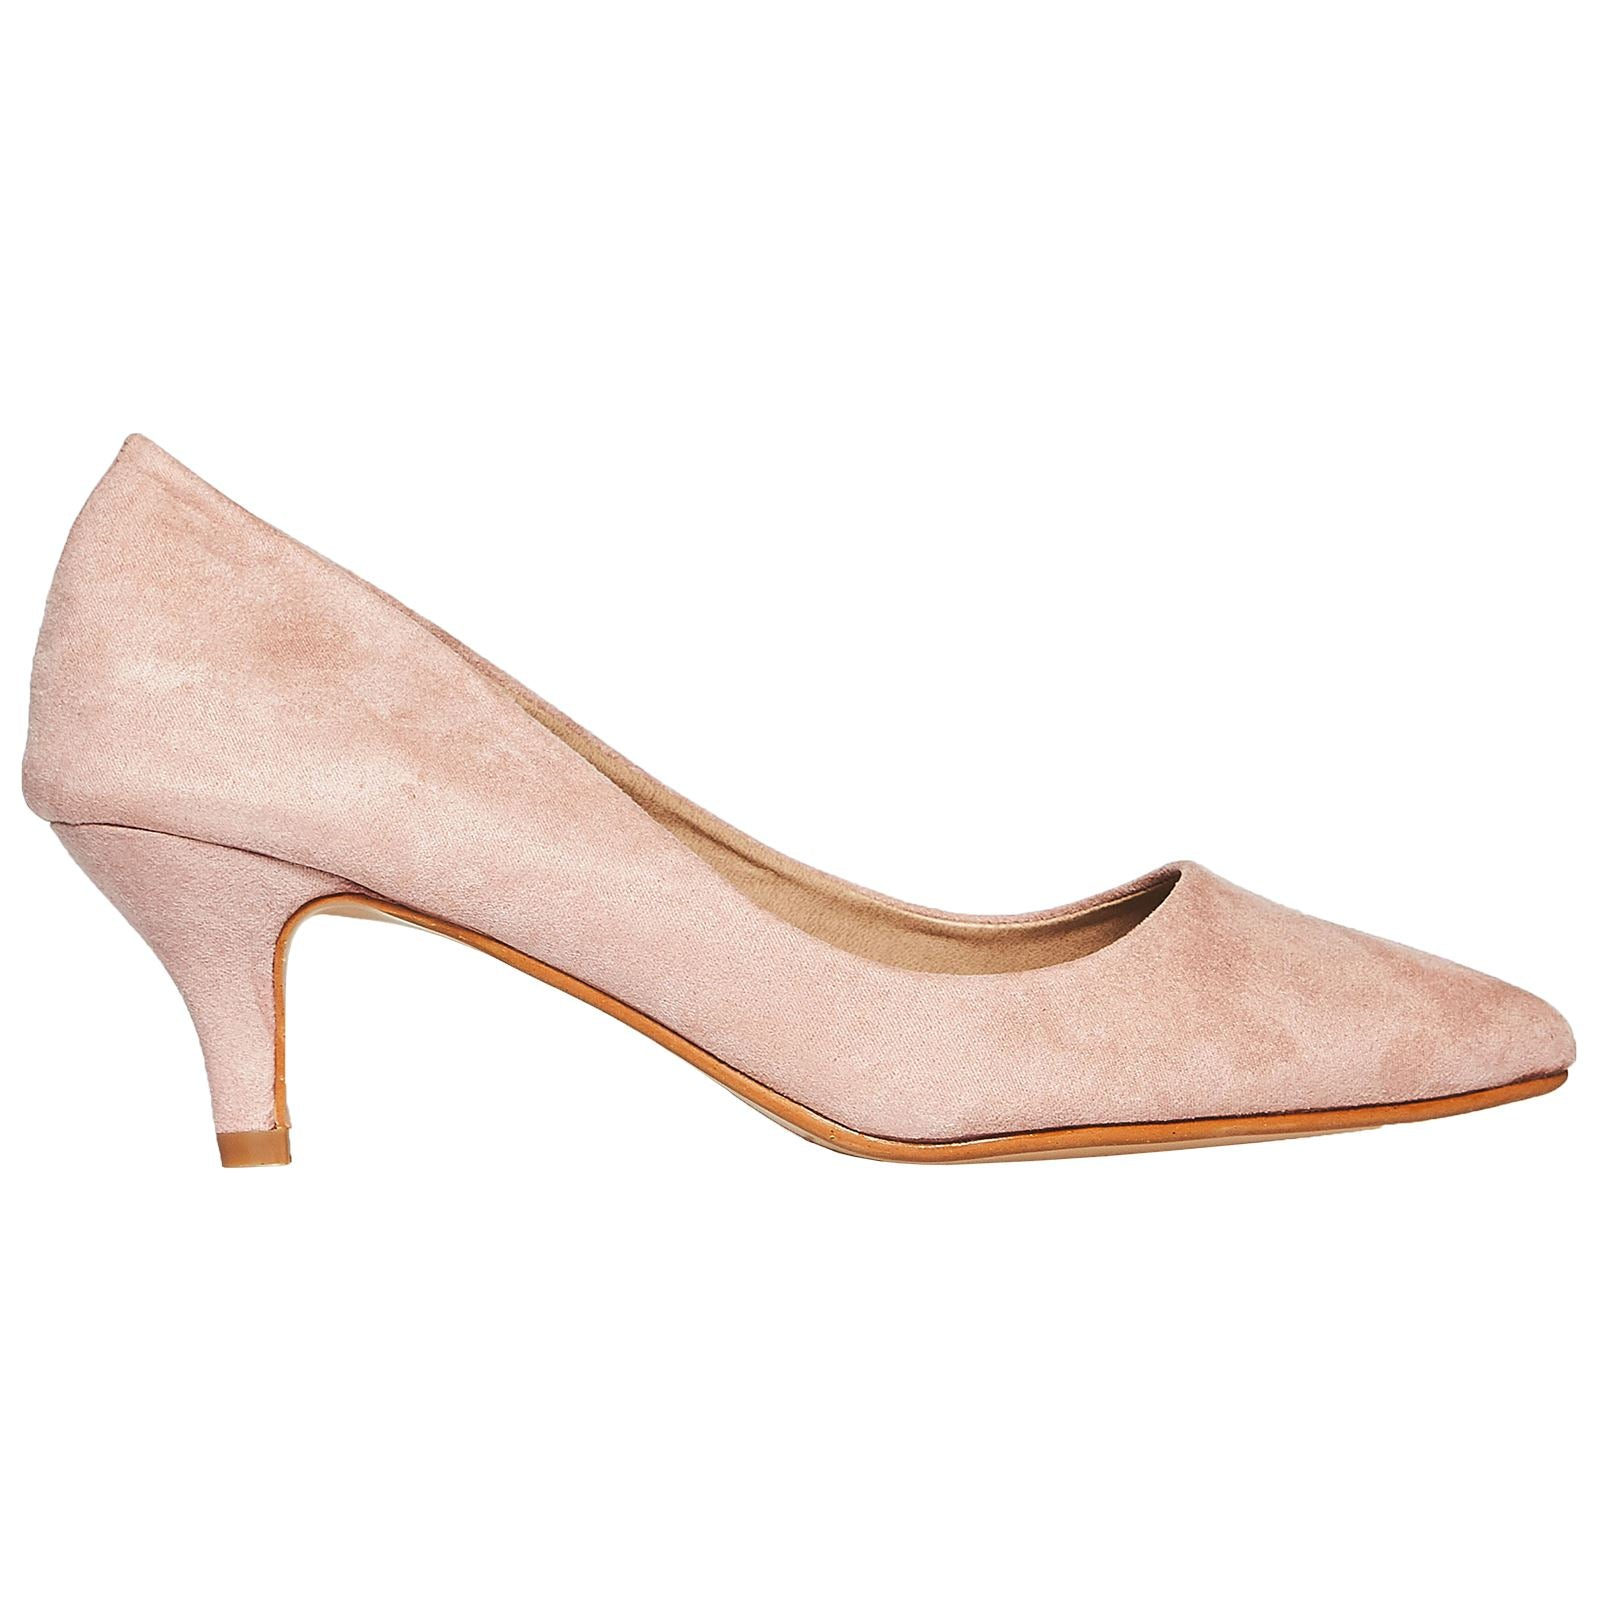 Miranda Kitten Heel Pointed Toe Court Shoes in Pink Faux Suede